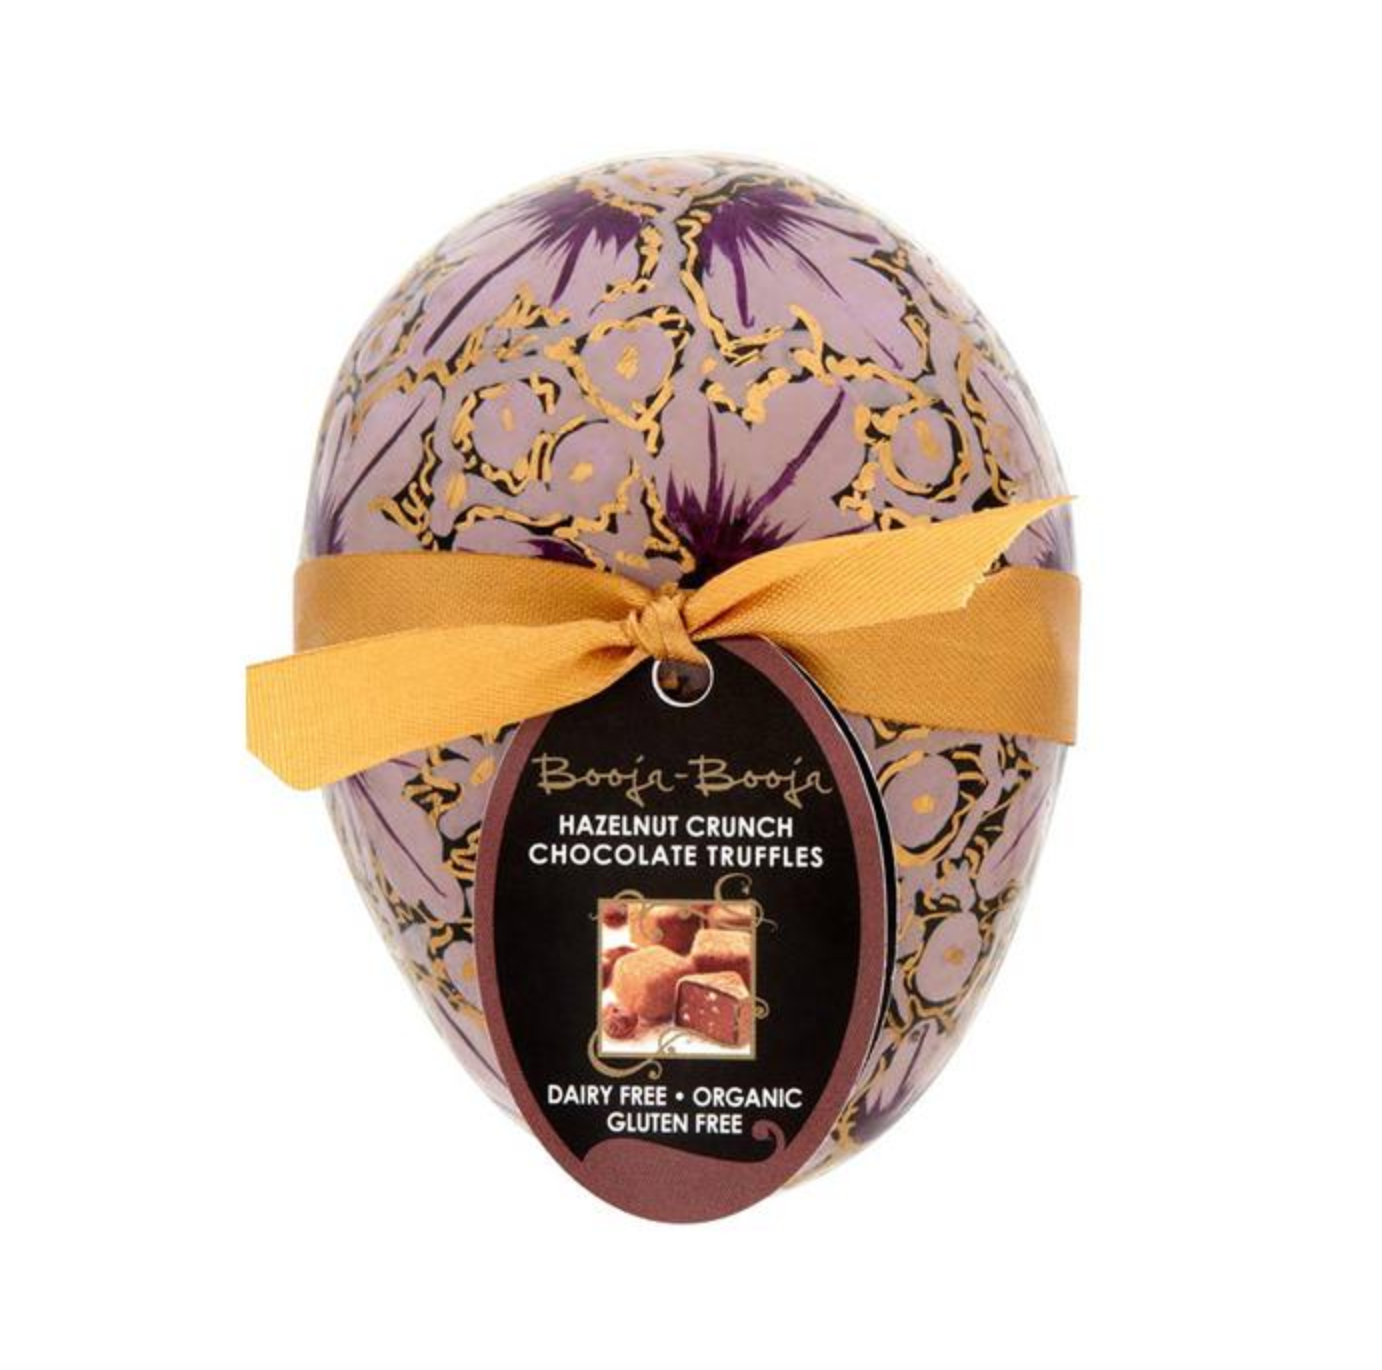 Booja Booja - Hazelnut Crunch Truffle Small Easter Egg (34g)